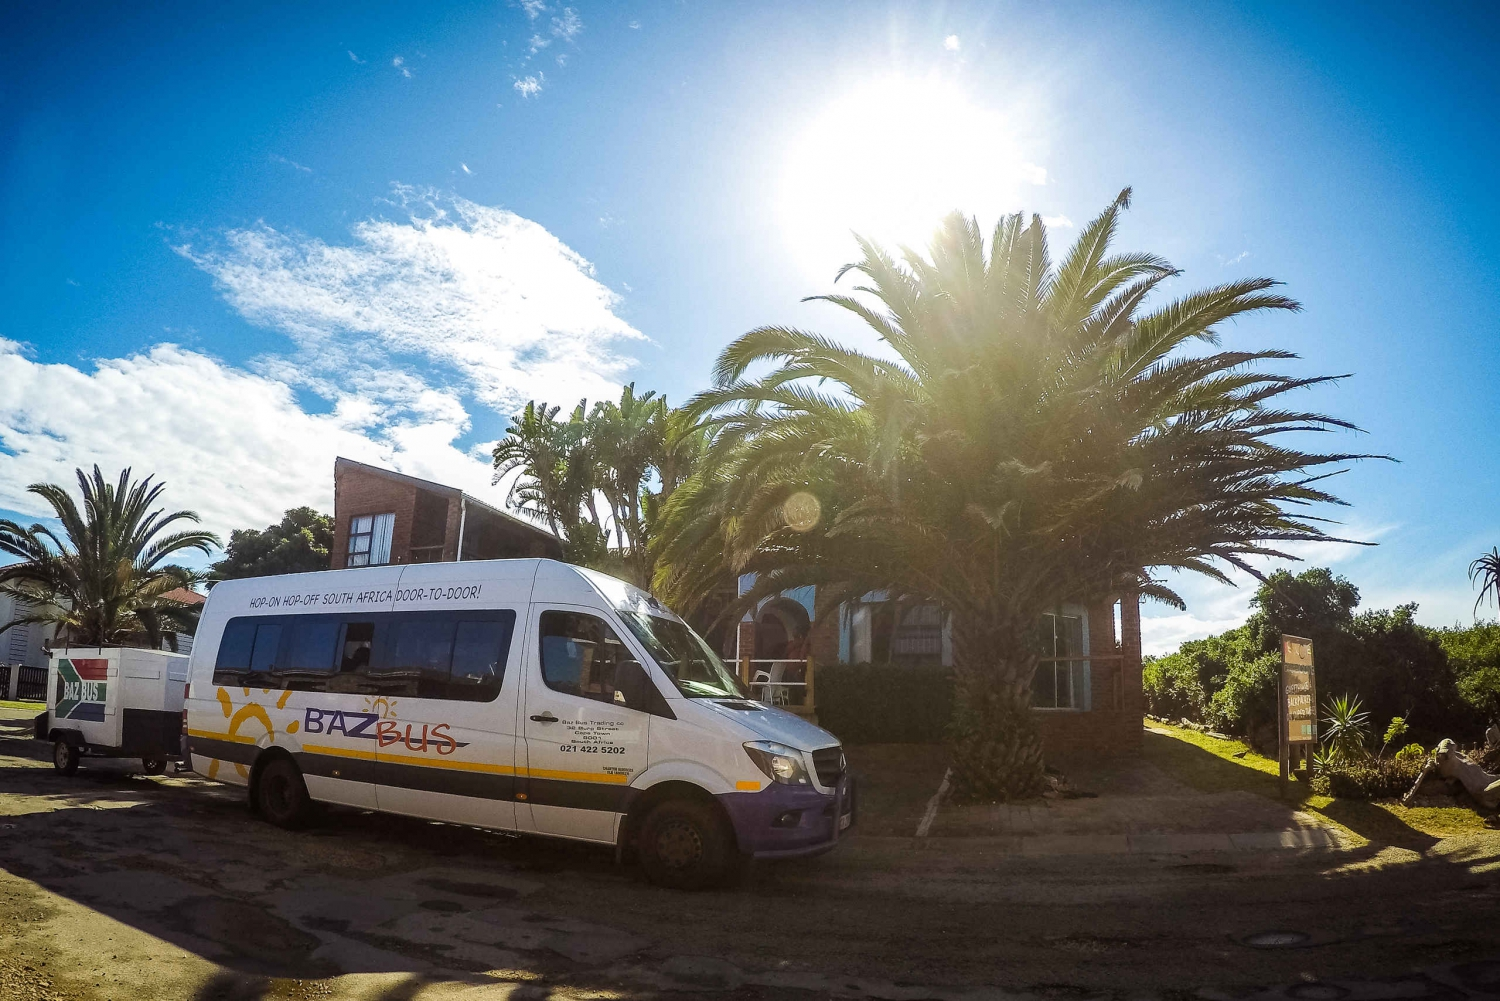 Hop-on Hop-off Door-to-Door Bus Between Cape Town & Durban